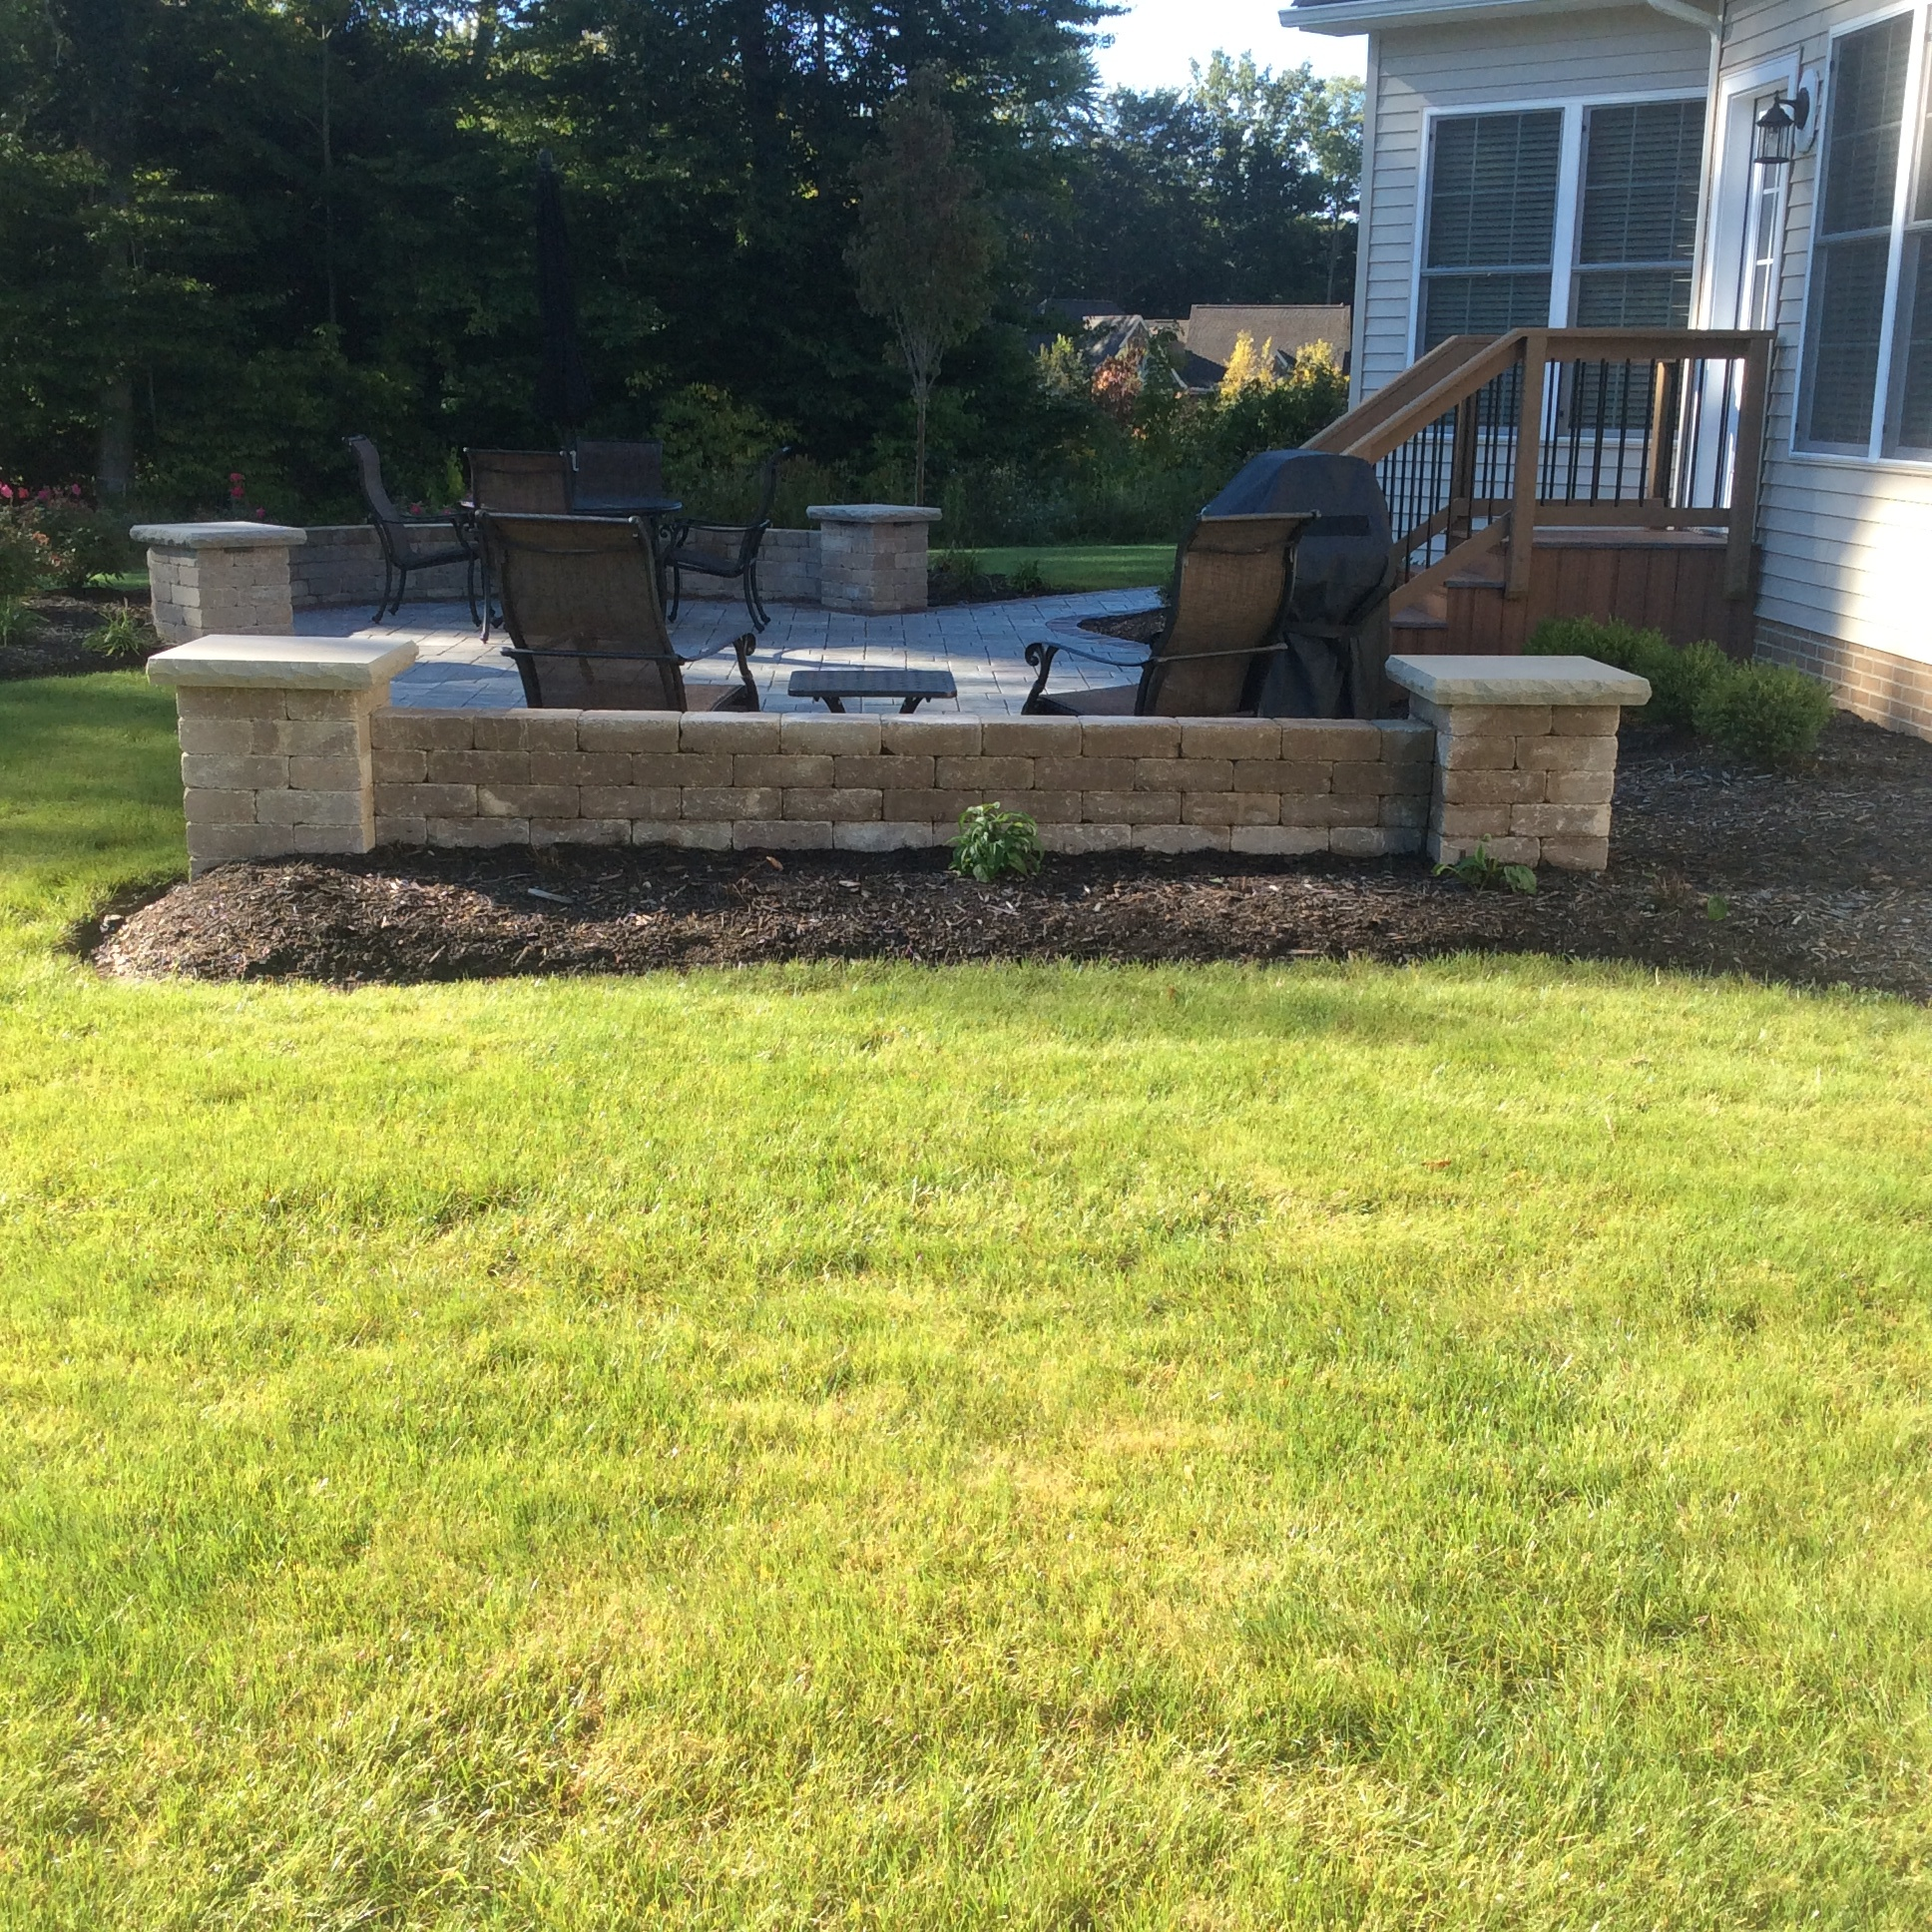 5 Reasons to Include Fall Cleanup in Your Lawn Care in Pepper Pike, OH